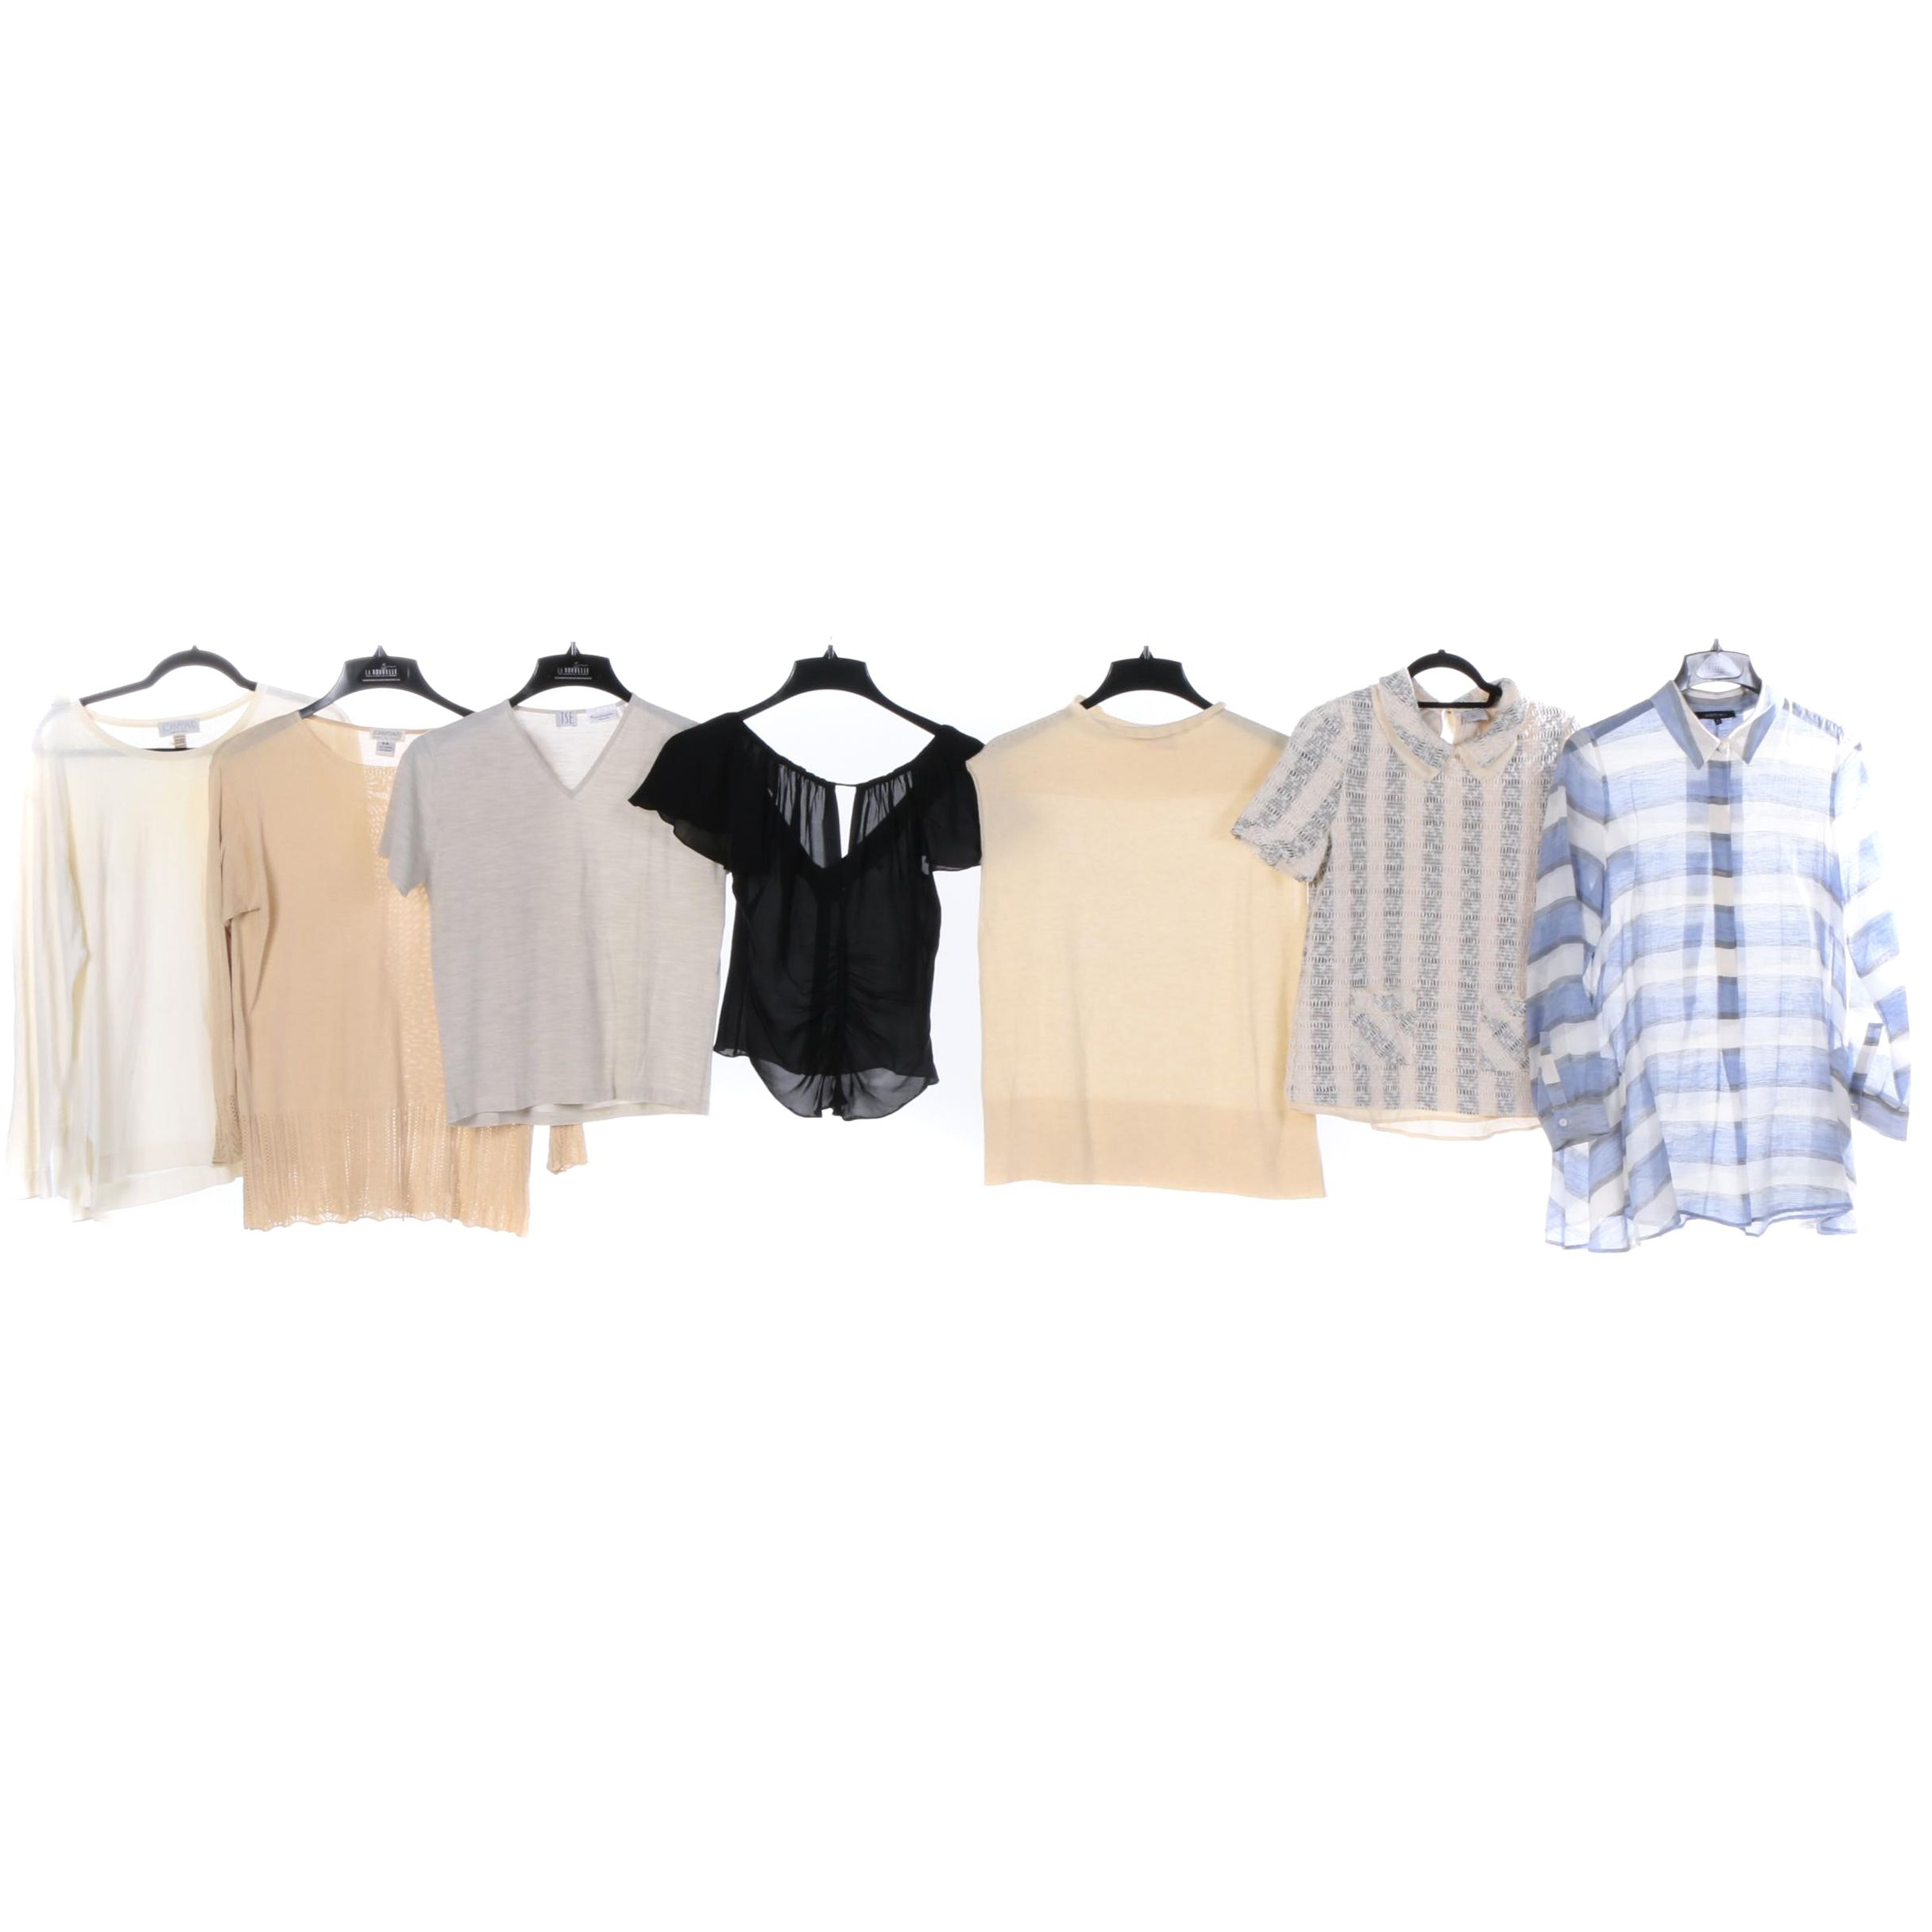 Women's Contemporary Tops Including Zac Posen and Lafayette 148